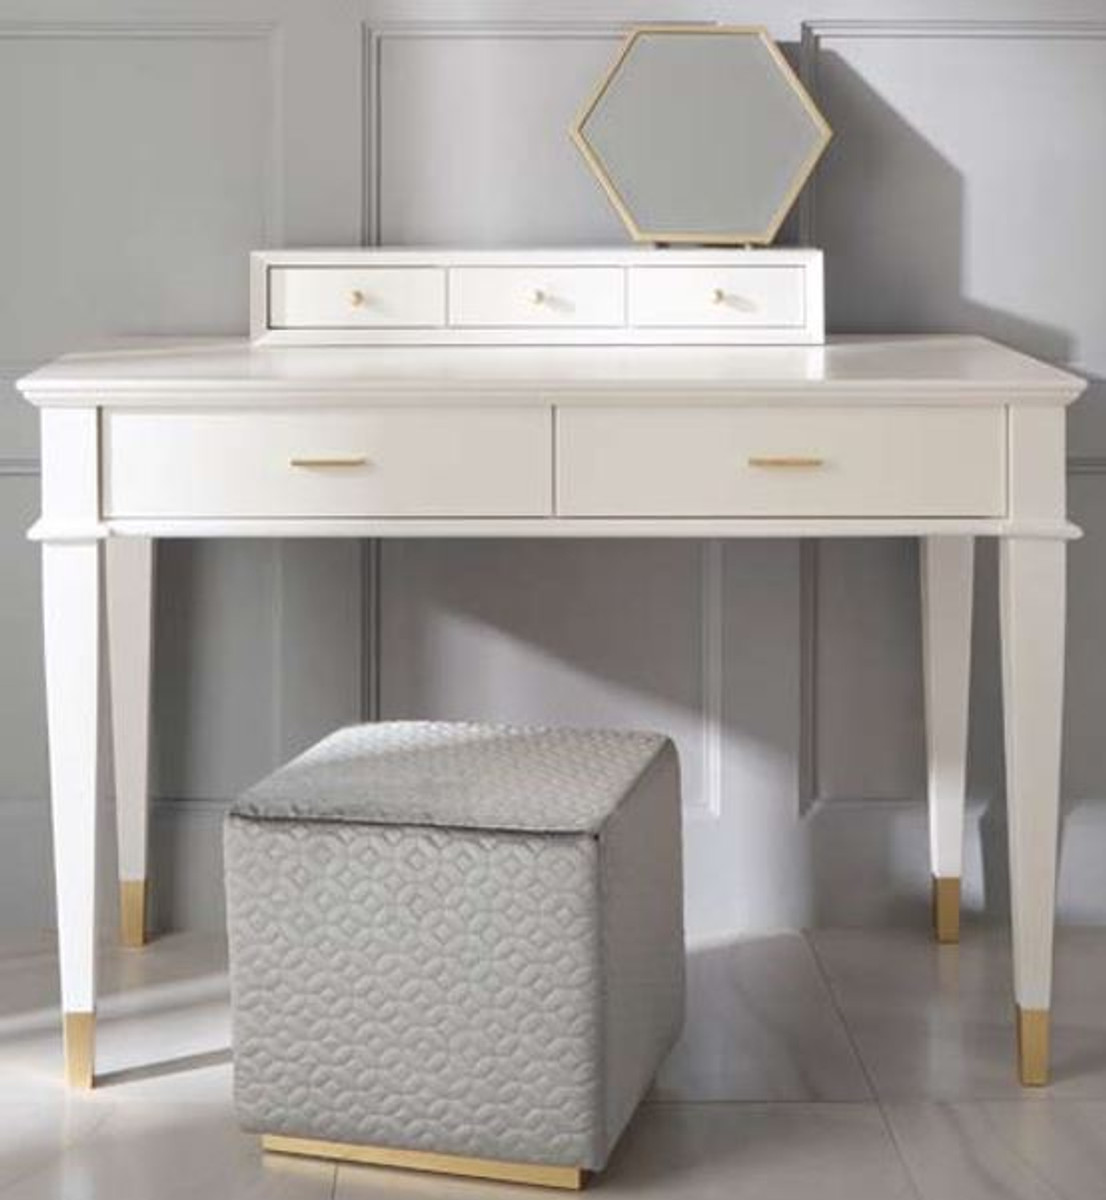 casa padrino luxury neoclassical dressing table with 5 drawers white gold 120 x 50 x h 81 cm art deco furniture